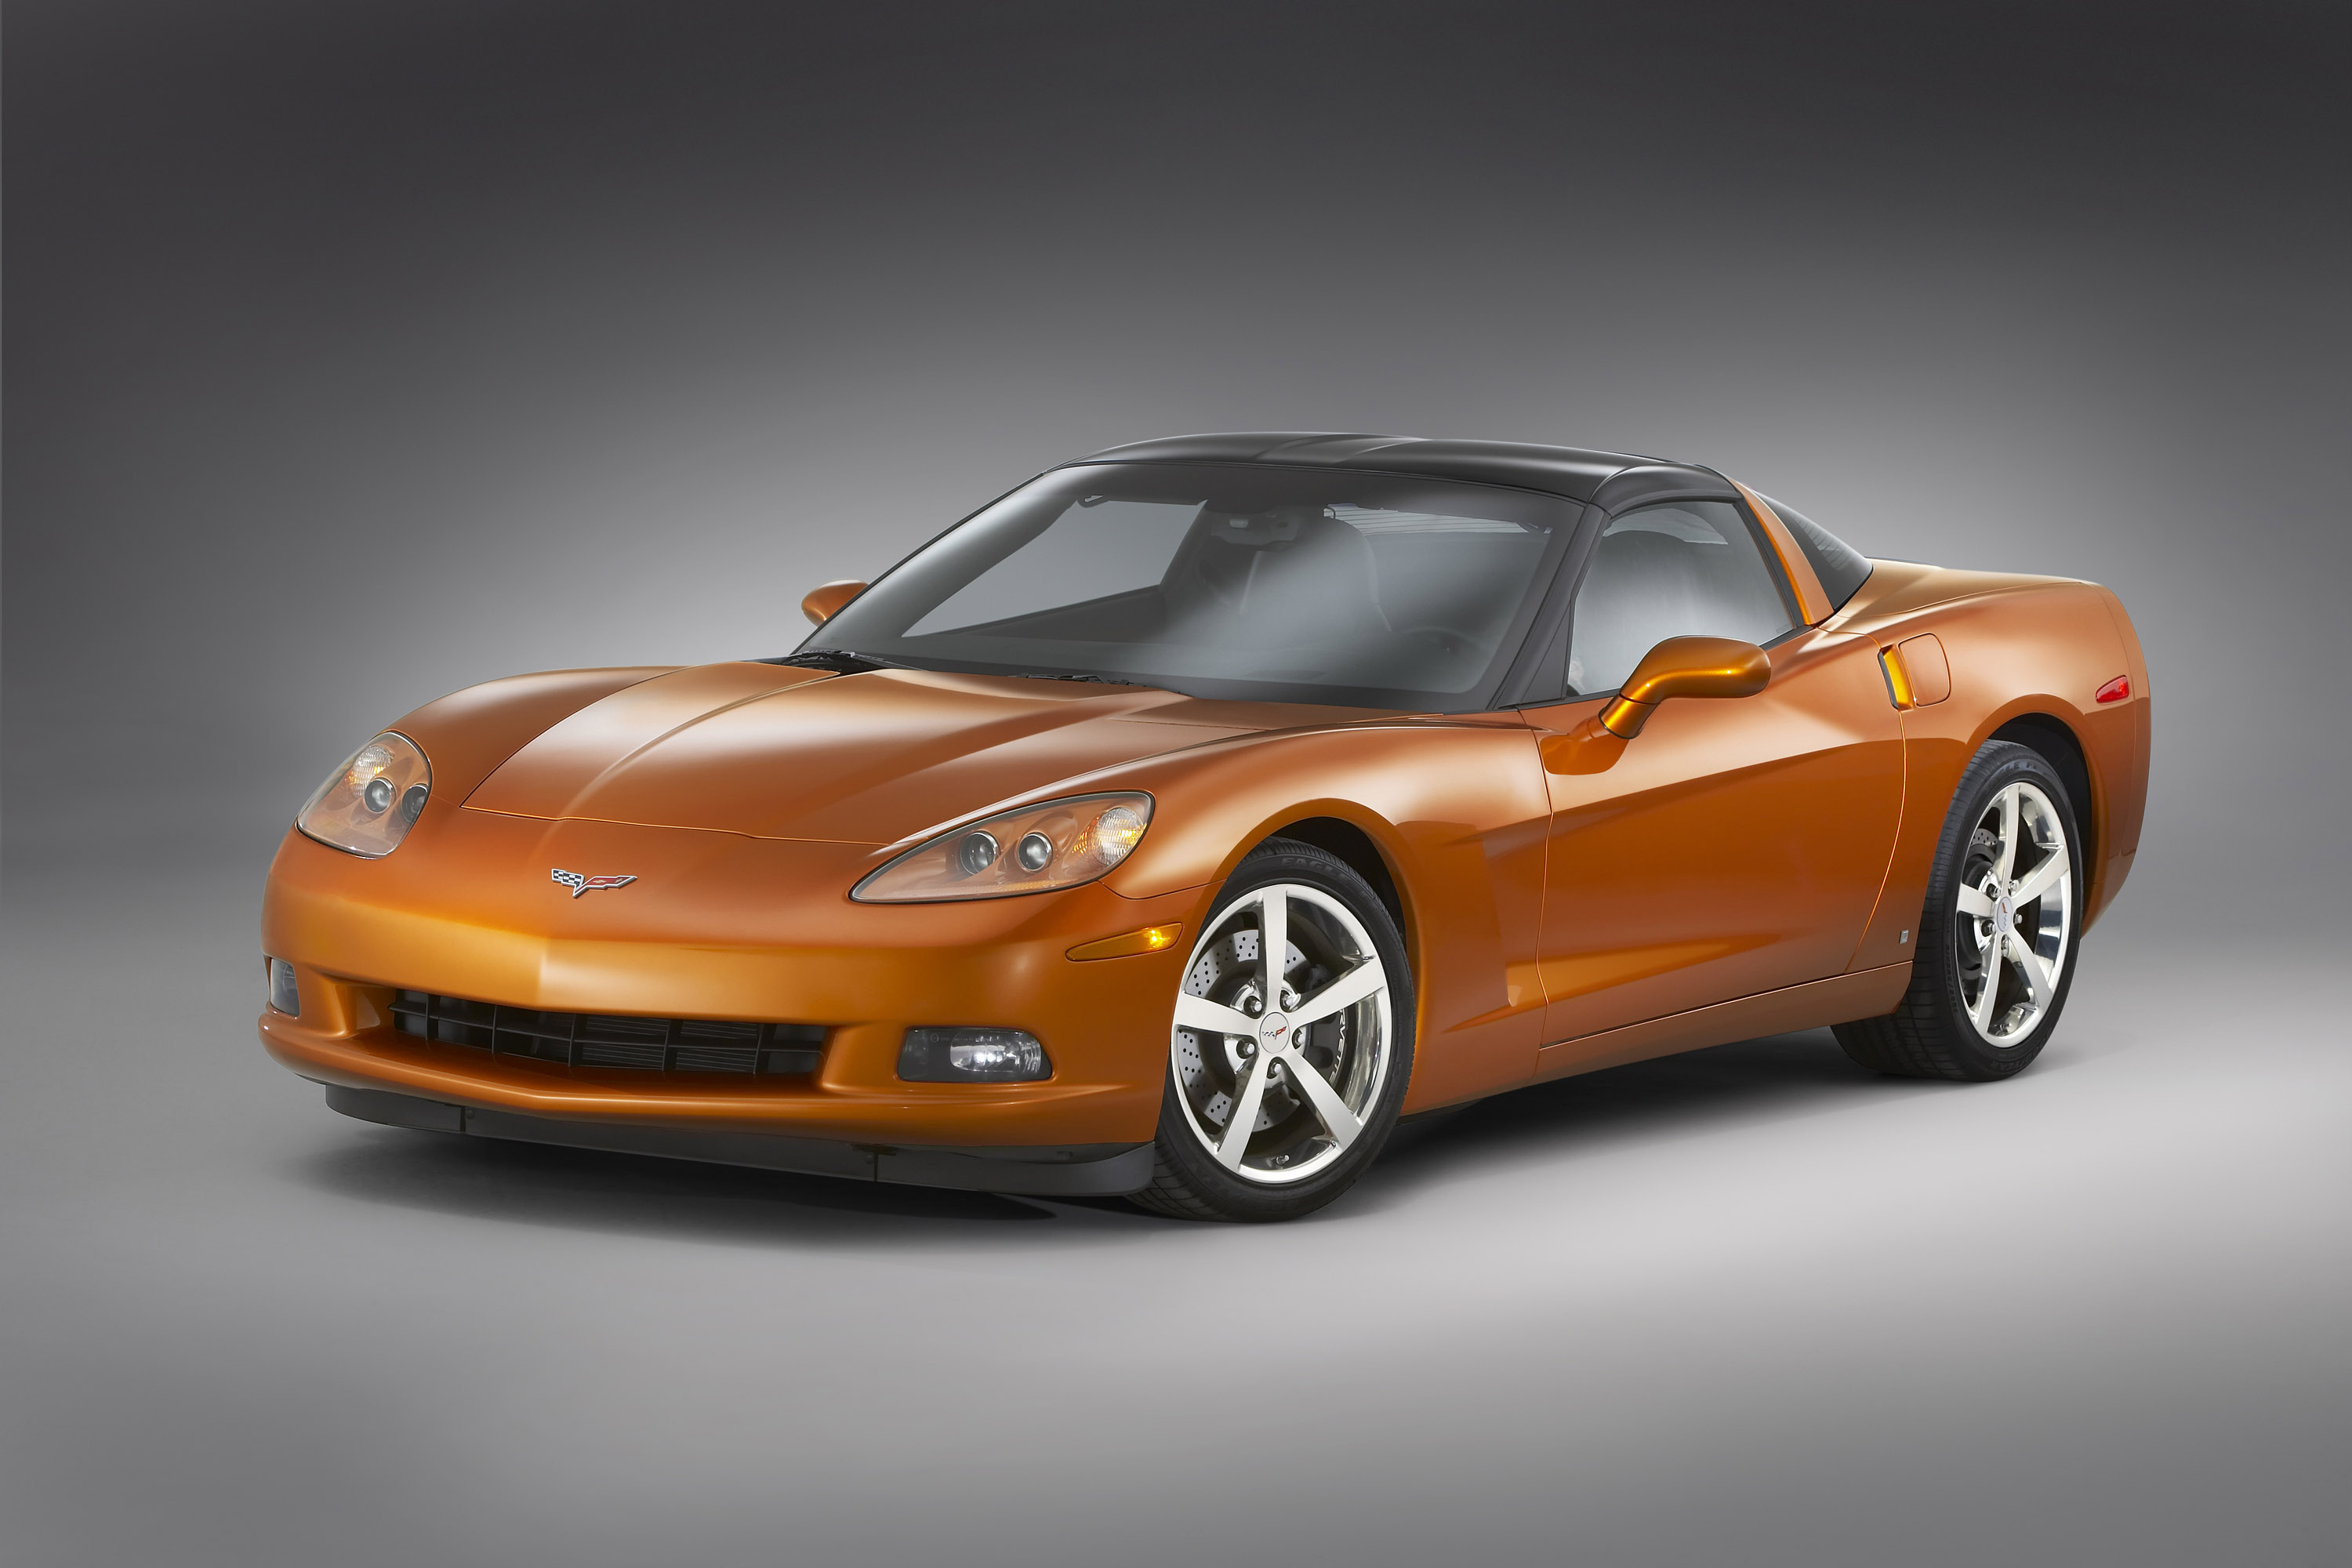 Chevrolet Corvette photos